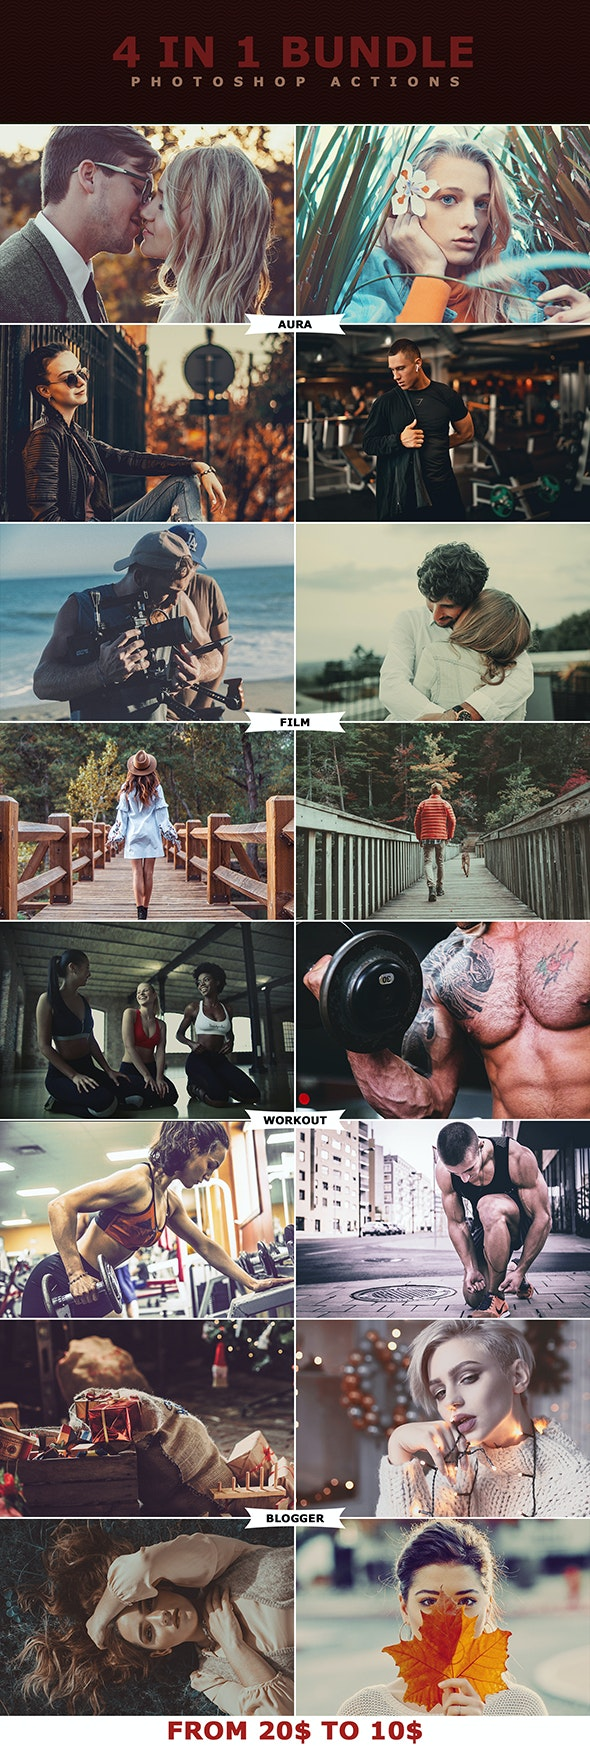 4 IN 1 Photoshop Actions Bundle - Photo Effects Actions